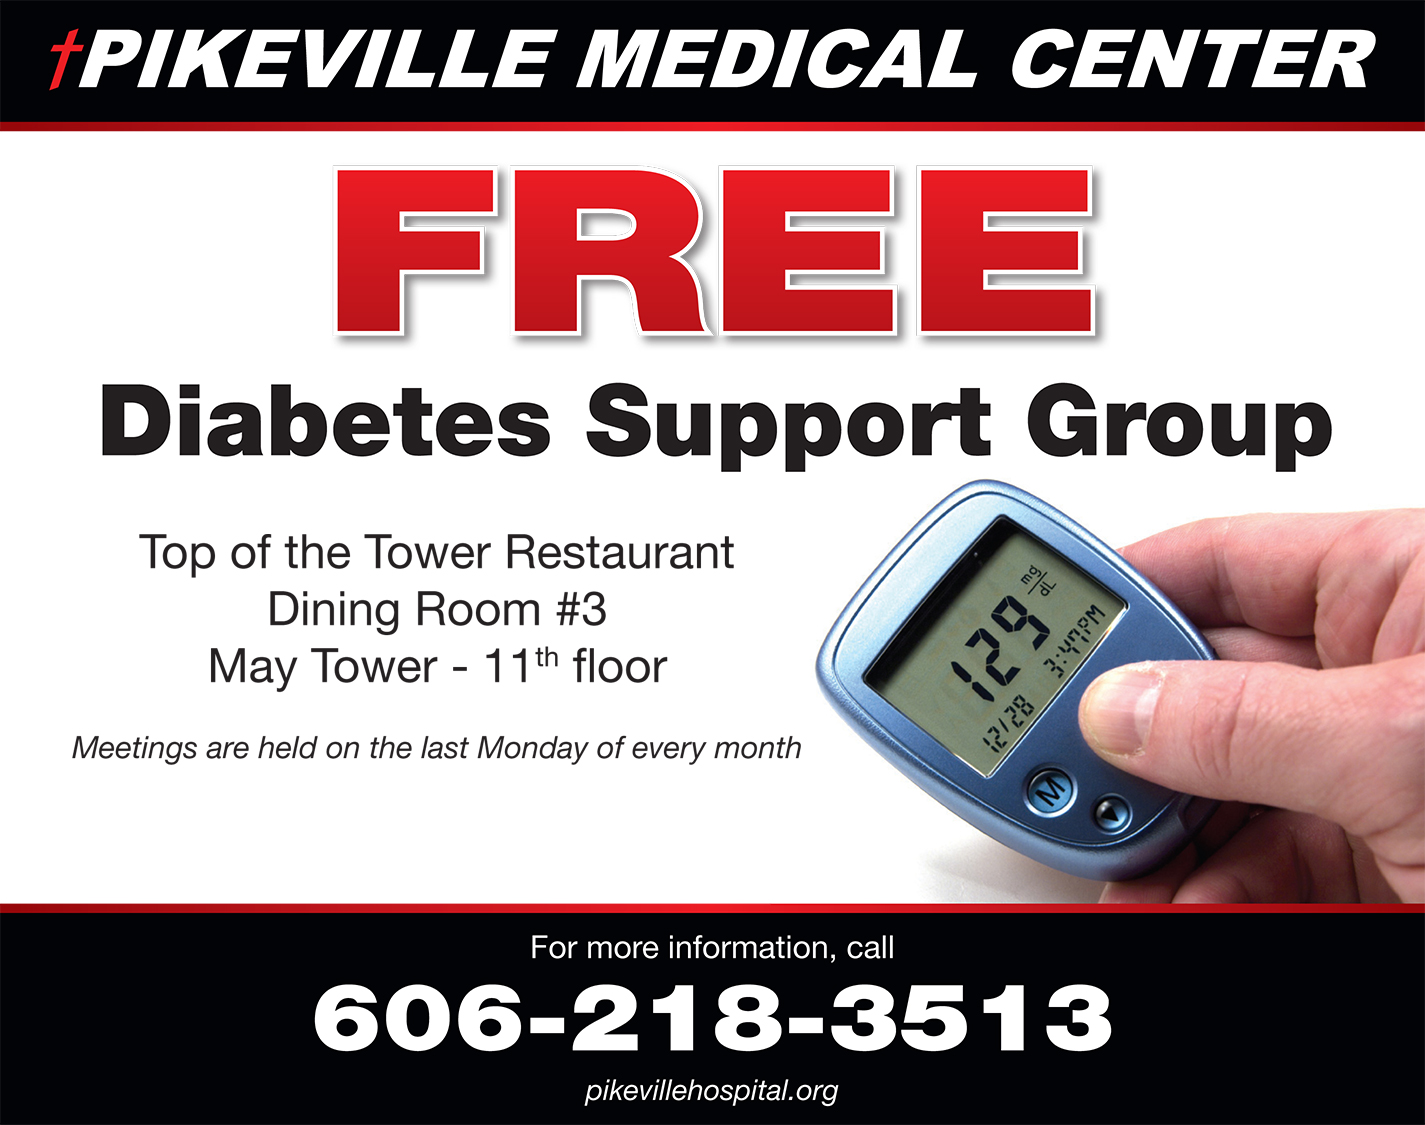 Diabetes Support Group @ May Tower, 11th floor restaurant | Pikeville | Kentucky | United States